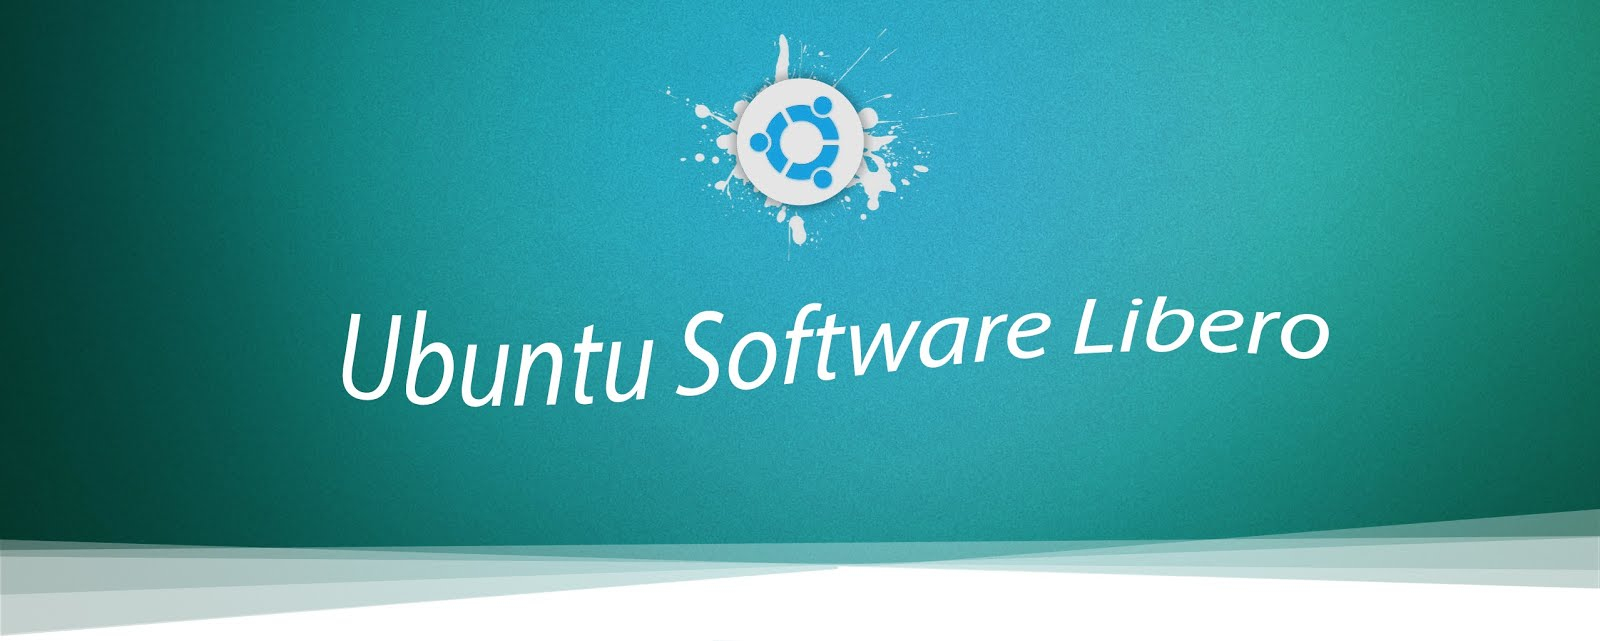 Ubuntu Software Libero